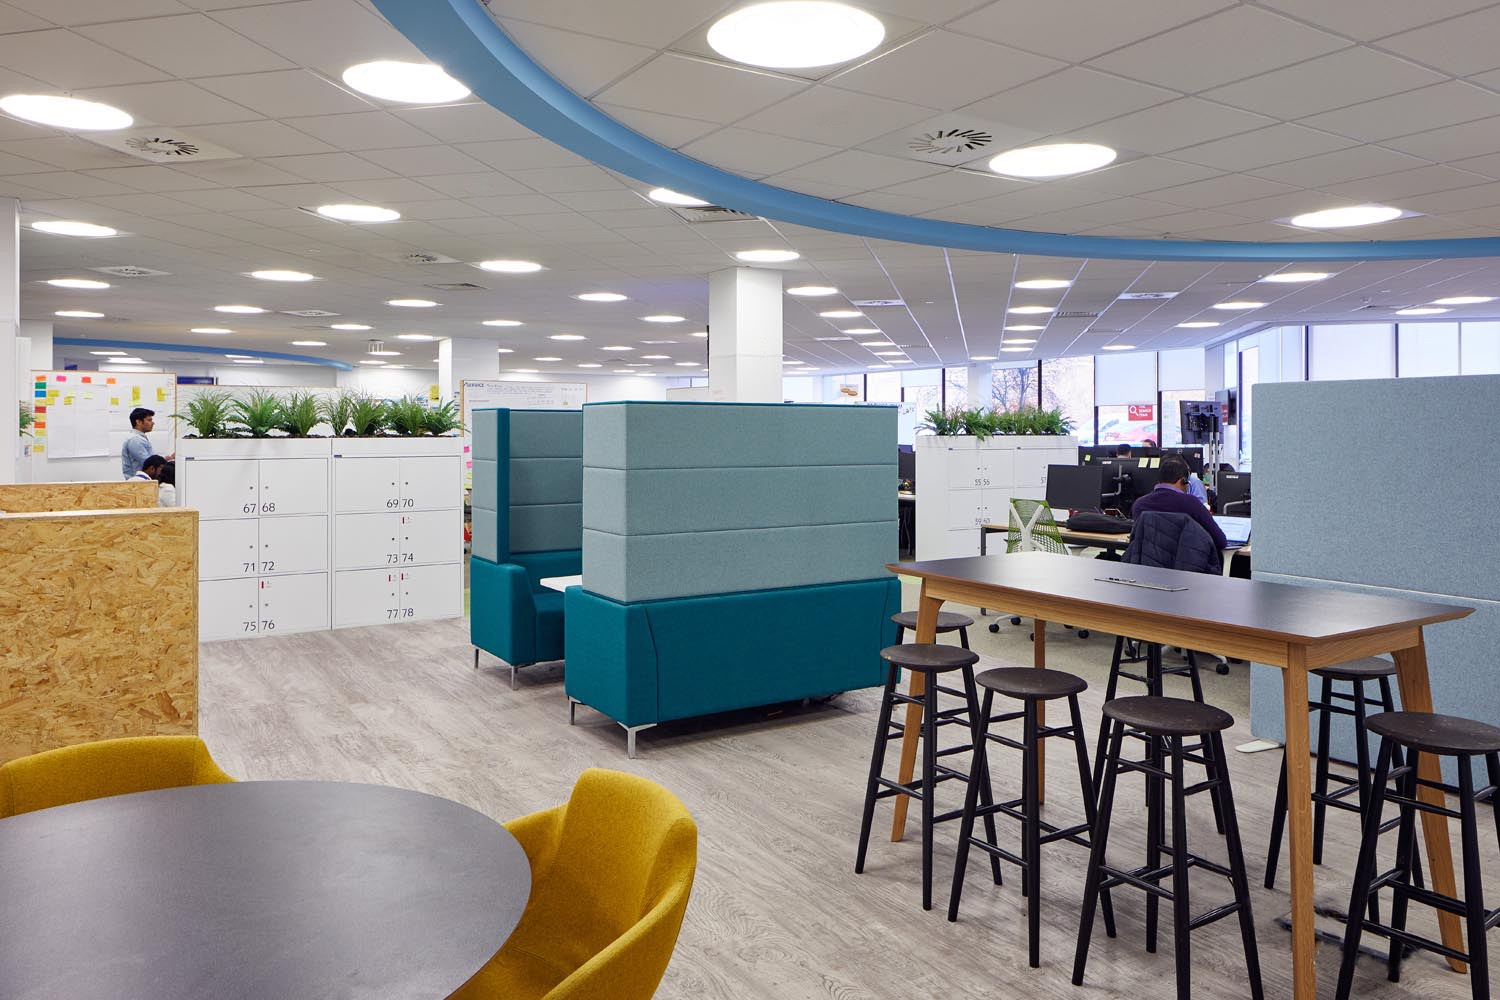 tui-luton-office-3